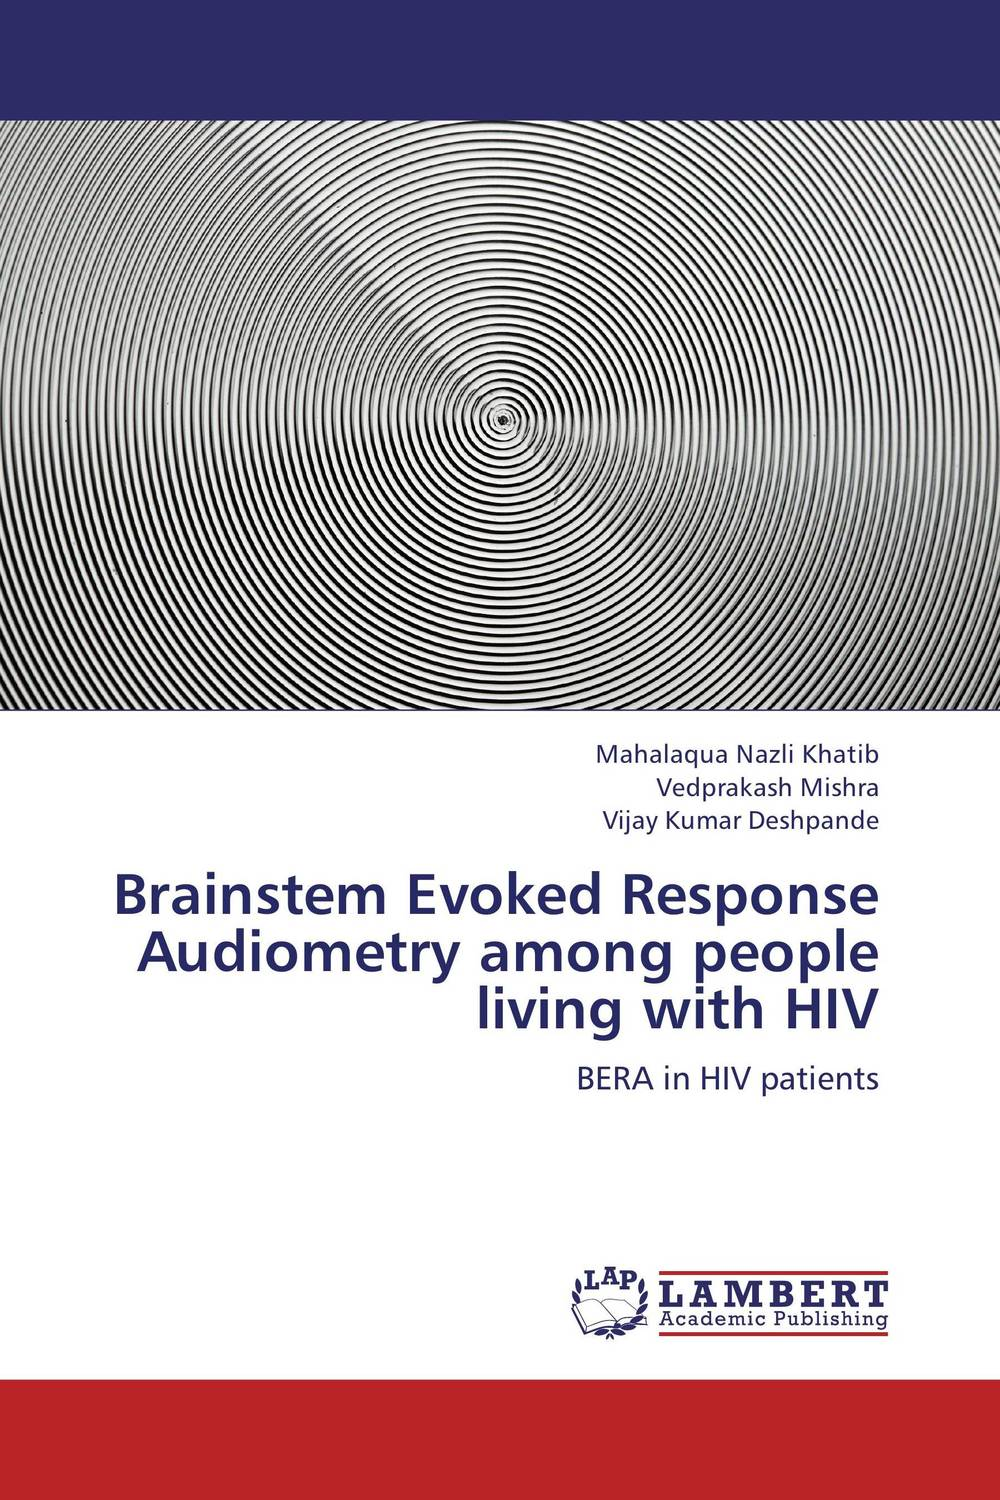 Brainstem Evoked Response Audiometry among people living with HIV personal sound amplifier high quality competitive price hearing aid deaf aid behind ear hearing aids s 188 free dropshipping